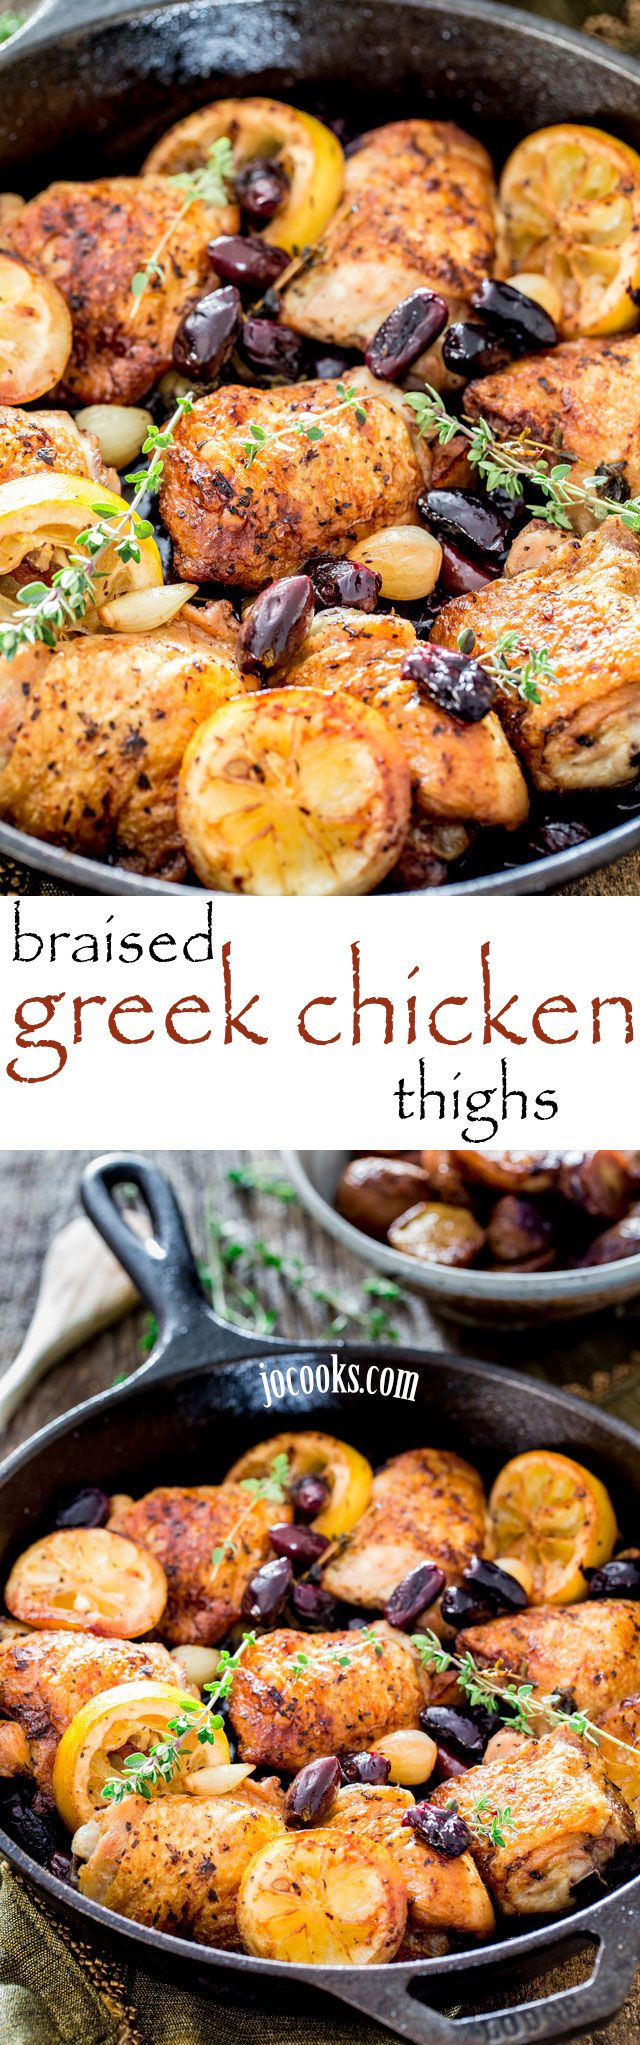 Skillet Braised Greek Chicken Thighs - juicy and crispy chicken, kalamata olives and pearl onions come together in this beautiful one pot dish for an easy dinner.